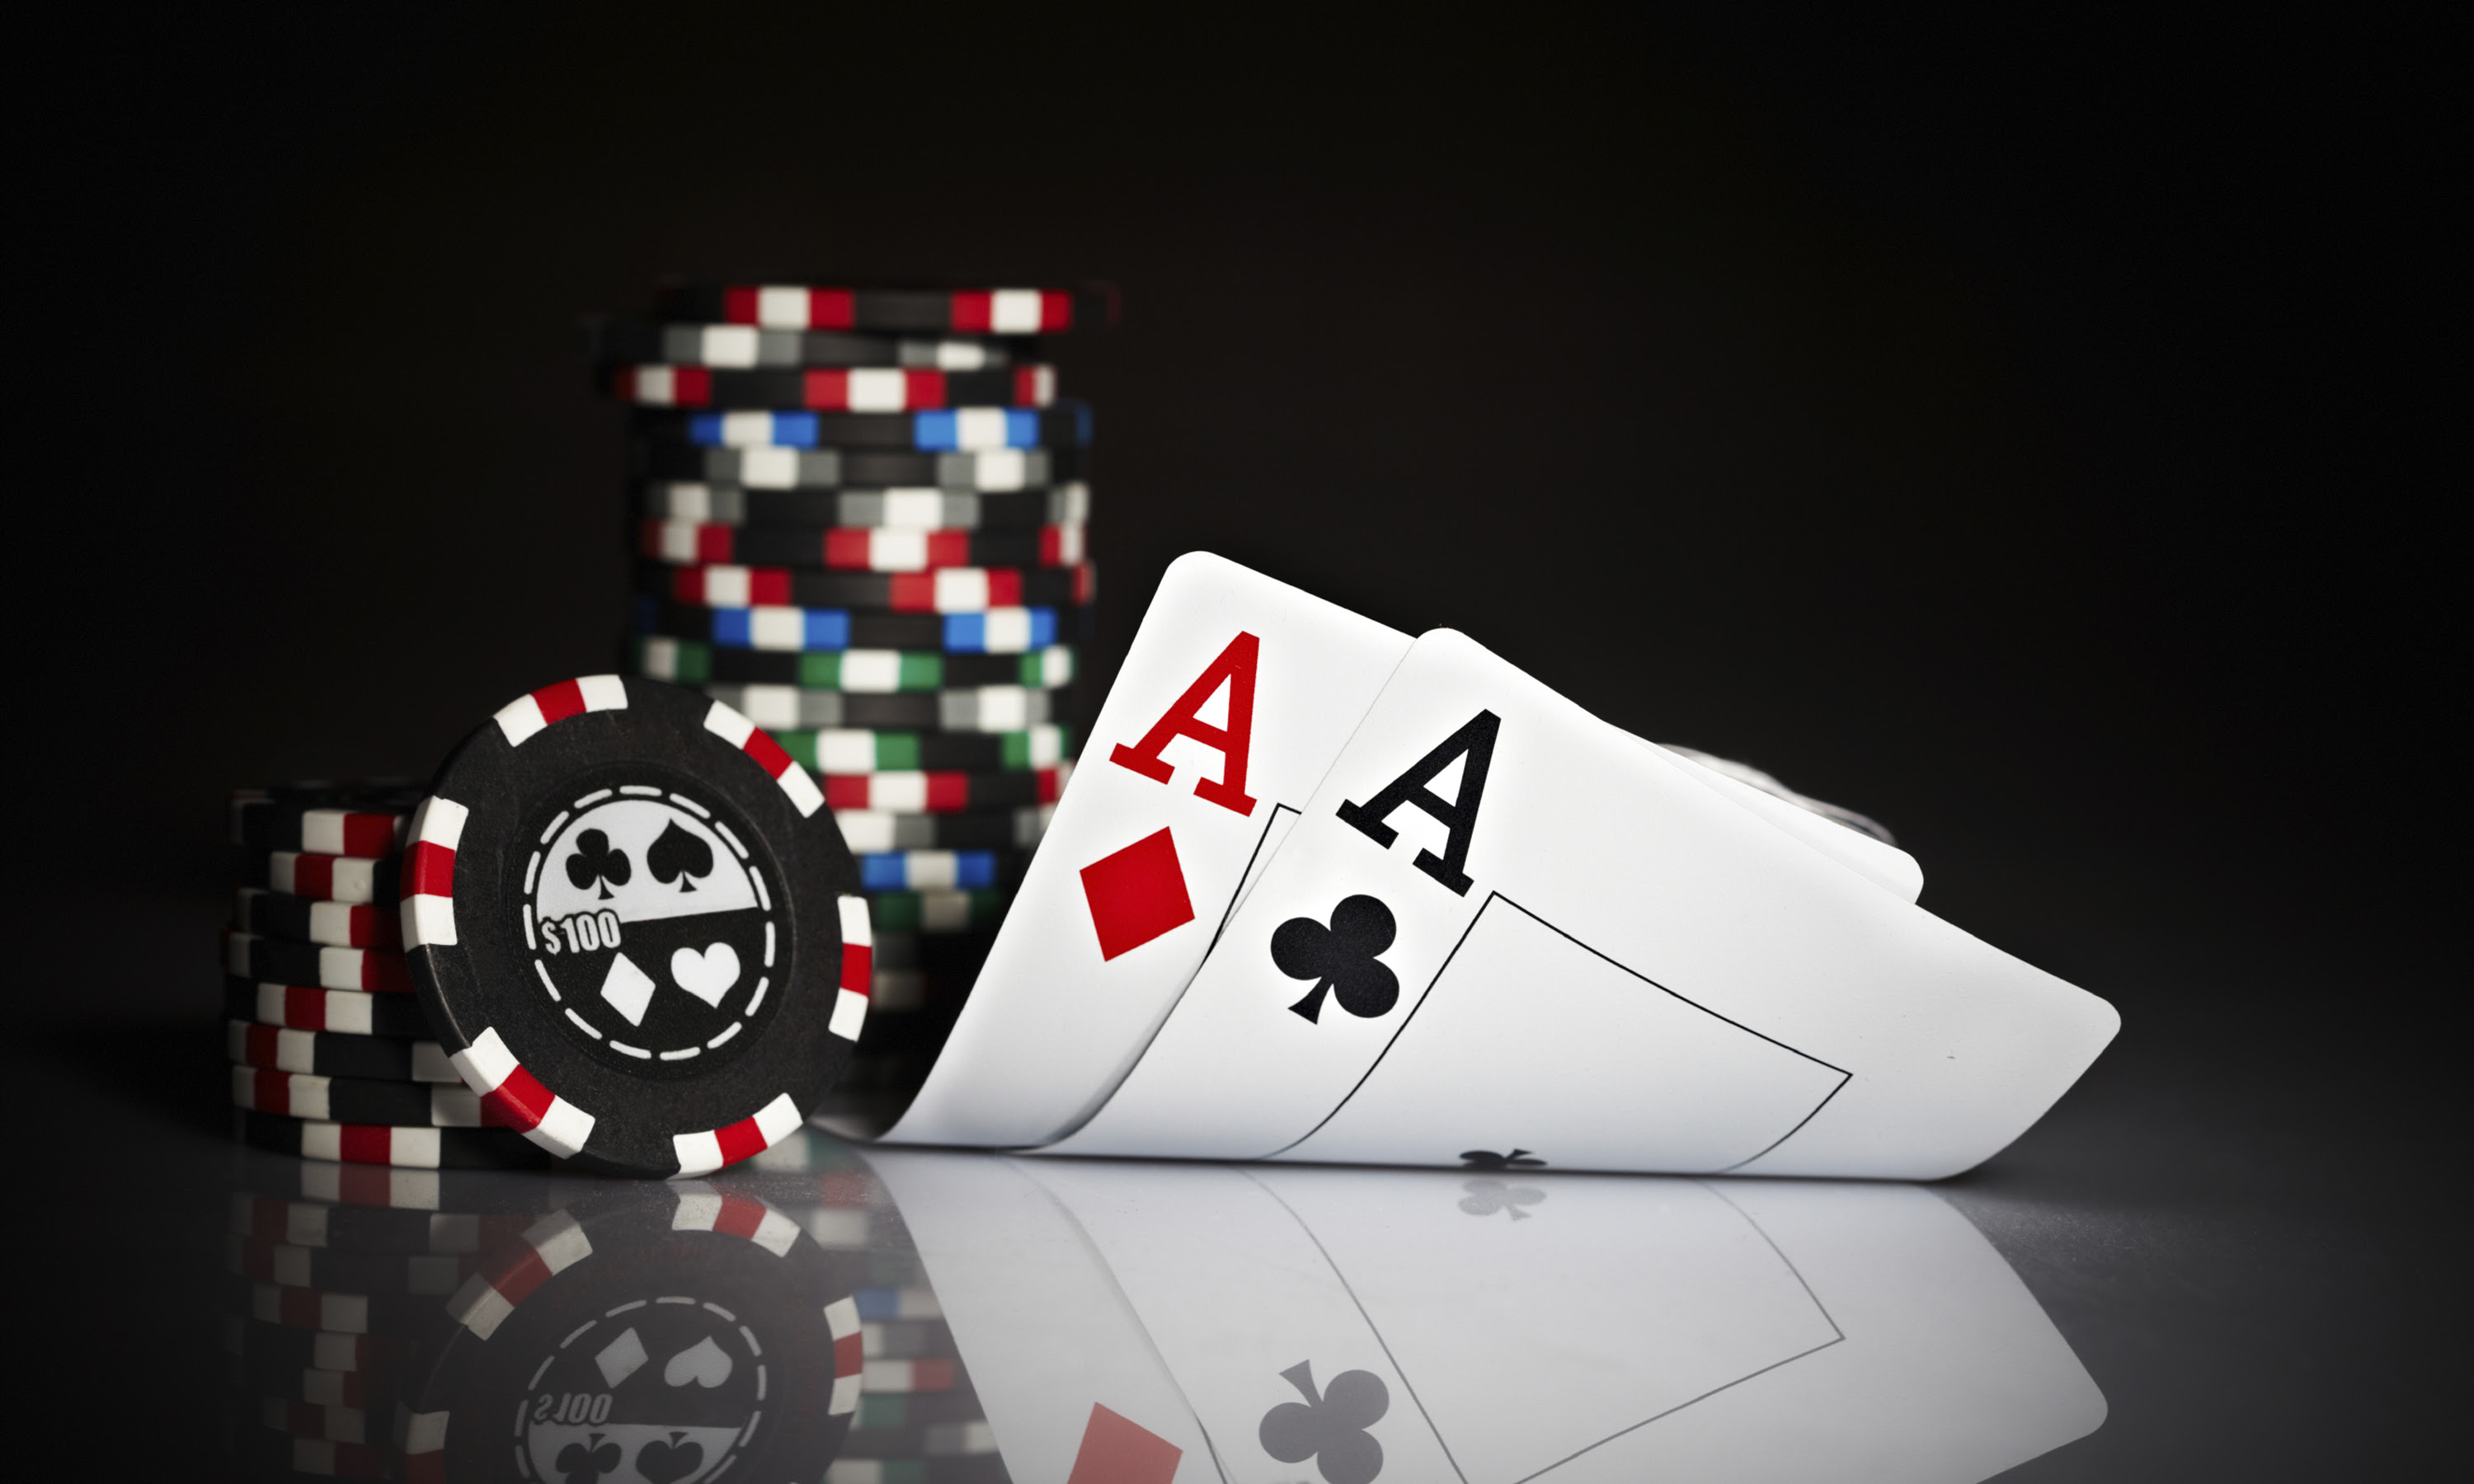 Online poker, casino or daily fantasy sports